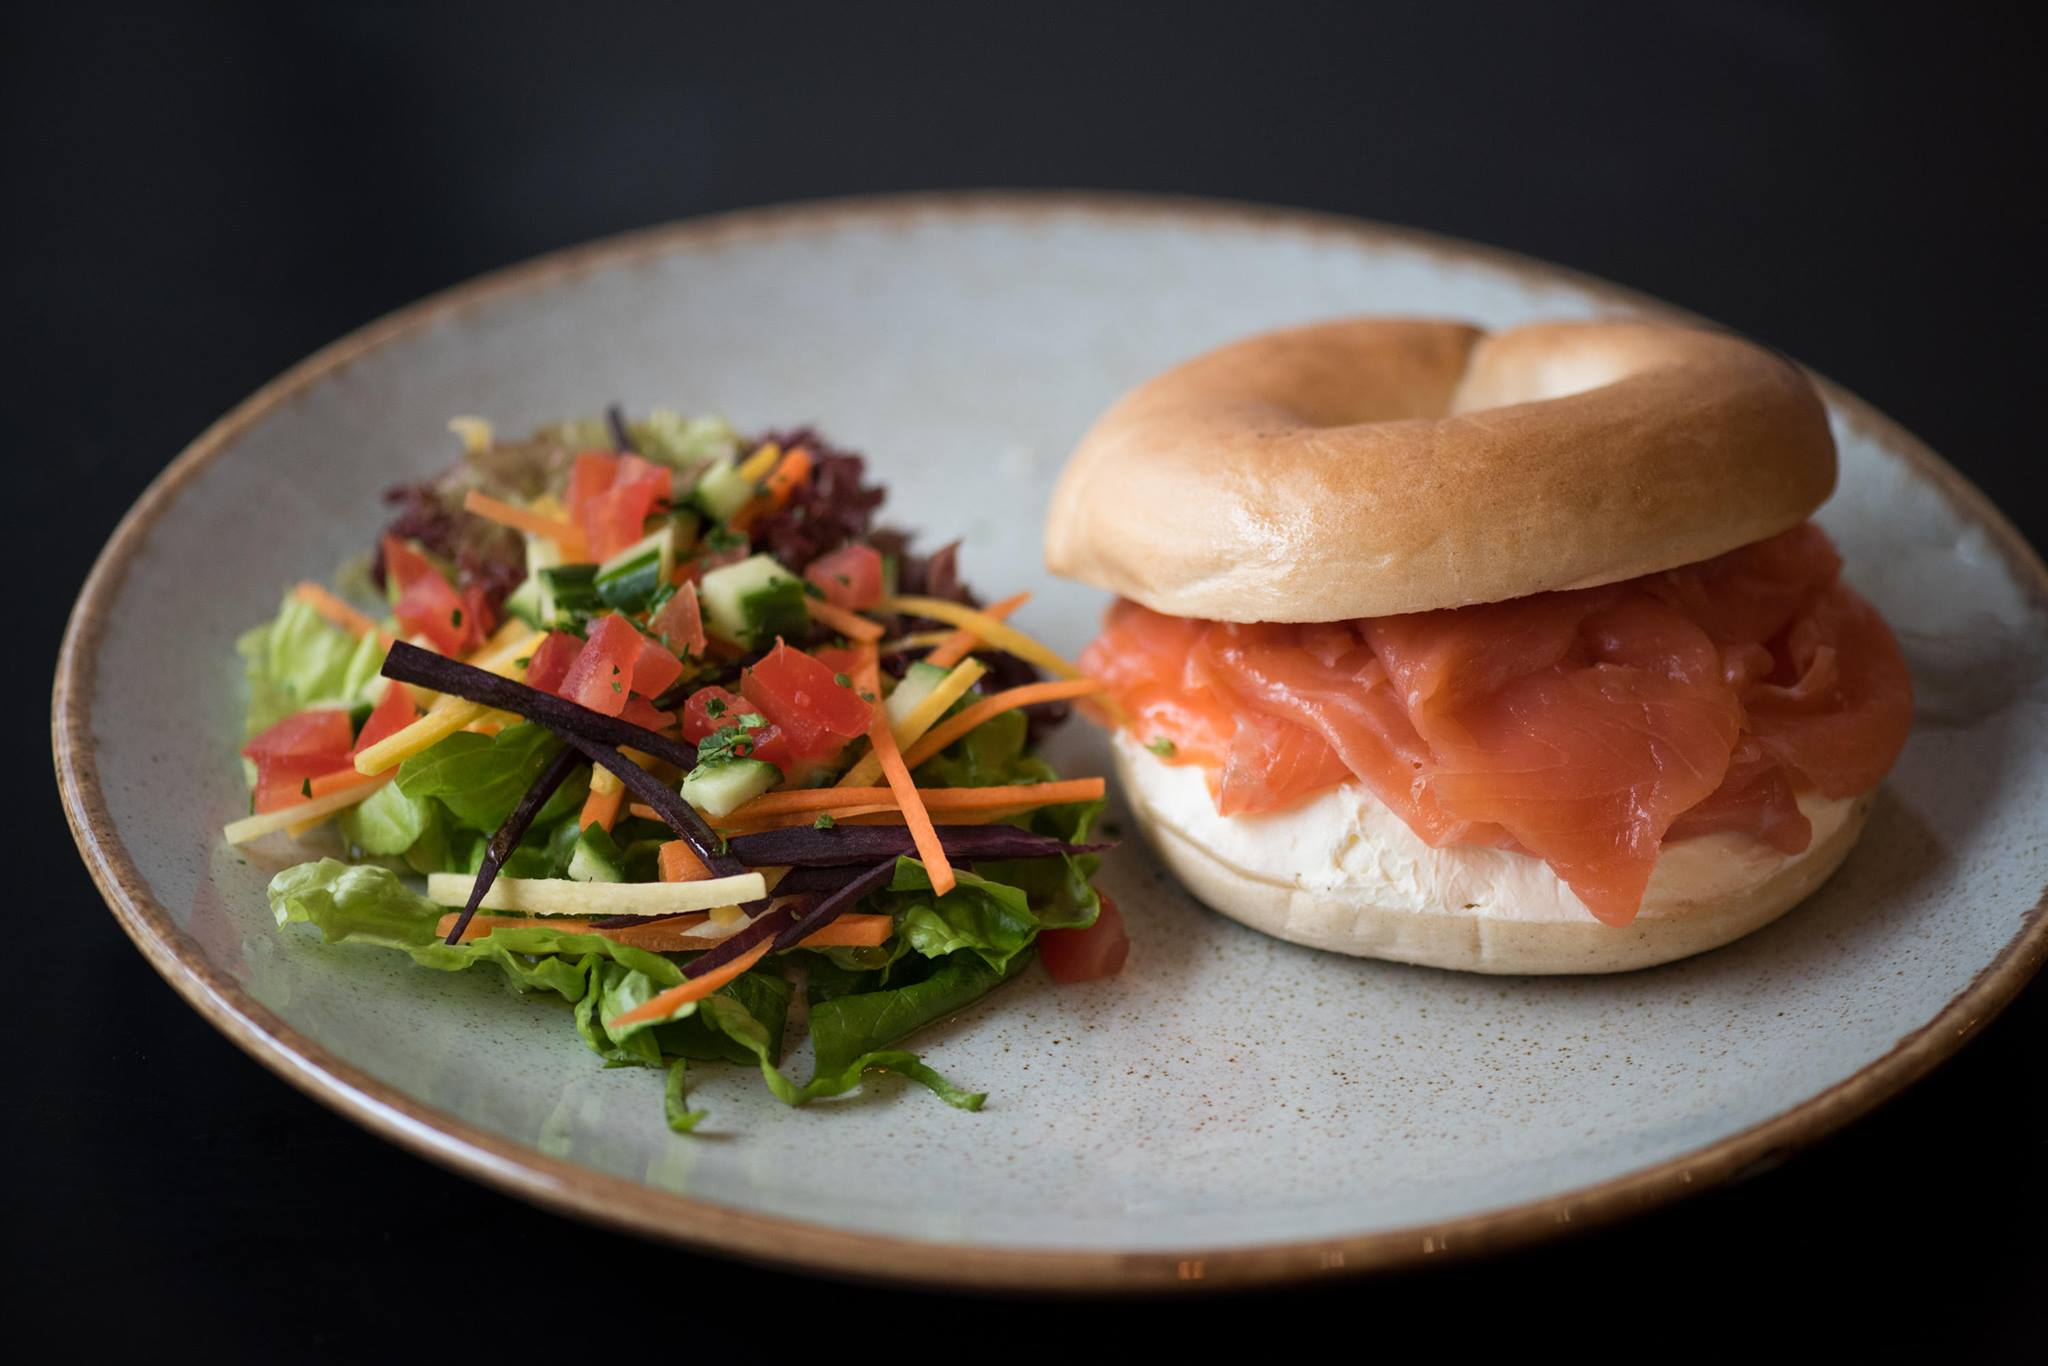 London's Best Smoked Salmon Bagels, Best Smoked Salmon Bagels in london, London's Best Bagels, bagels in london, smoked salmon bagels london, best smoked salmon bagels london, bagels london